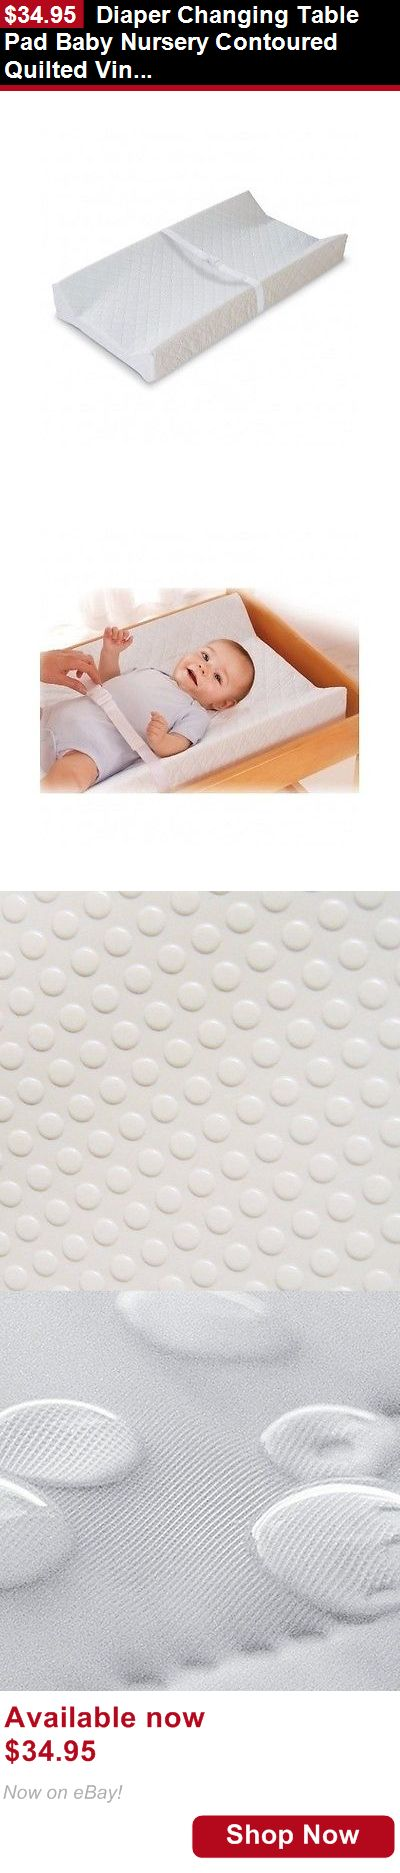 Changing Pads And Covers: Diaper Changing Table Pad Baby Nursery Contoured Quilted Vinyl Waterproof Belt BUY IT NOW ONLY: $34.95